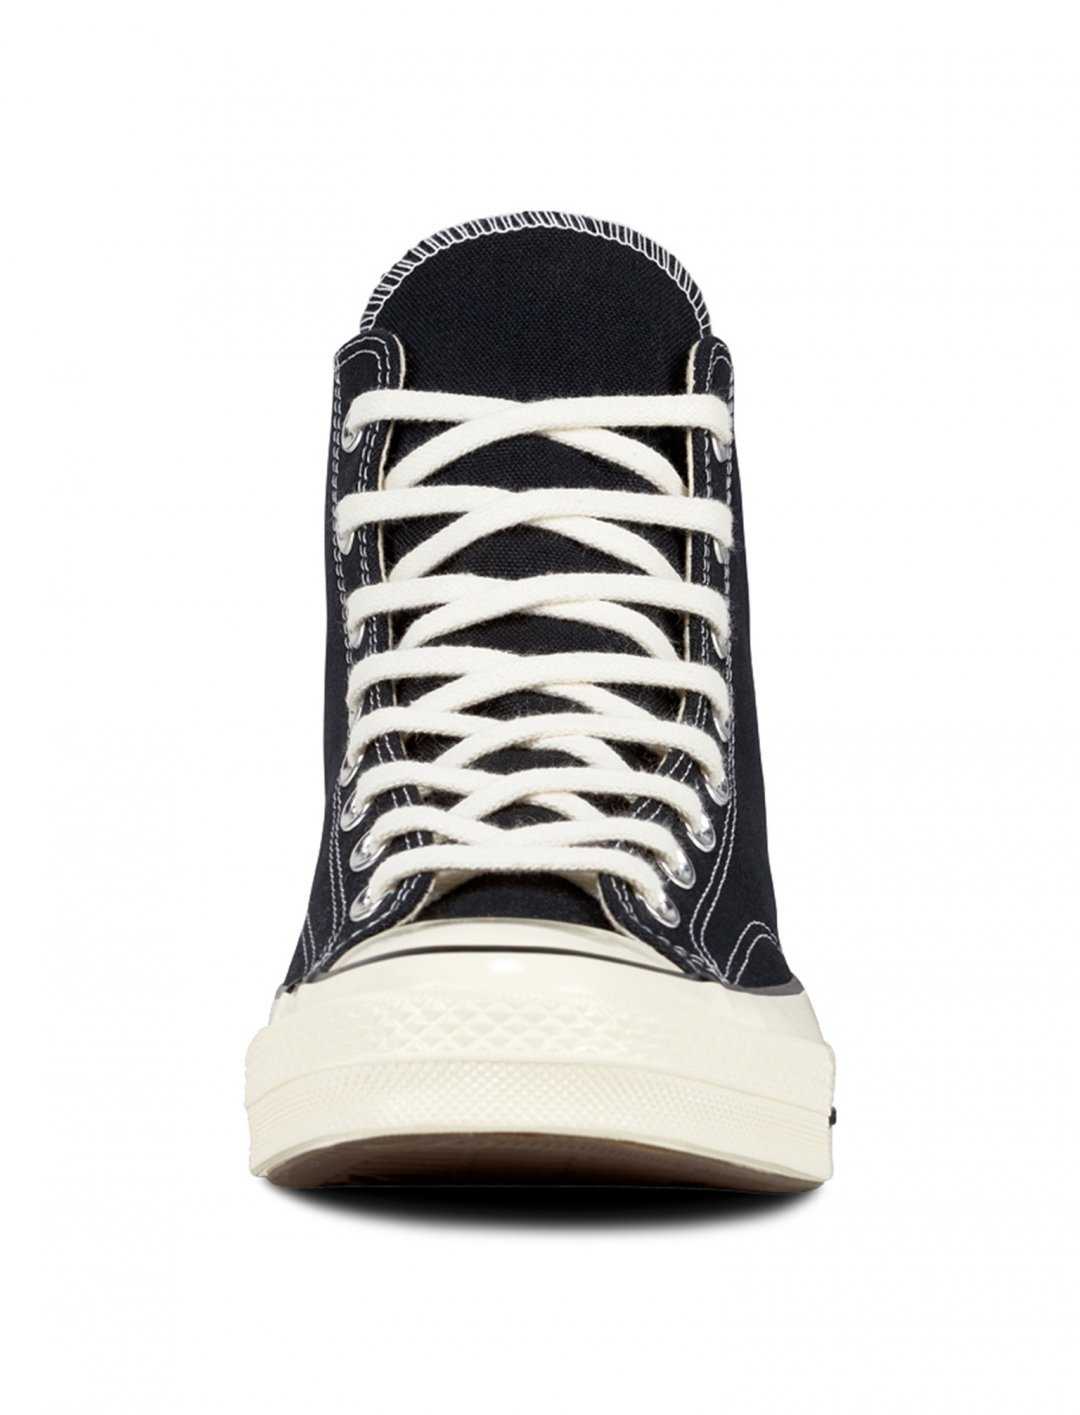 """Kodie Shane's High Top Trainers {""""id"""":12,""""product_section_id"""":1,""""name"""":""""Shoes"""",""""order"""":12} Converse"""